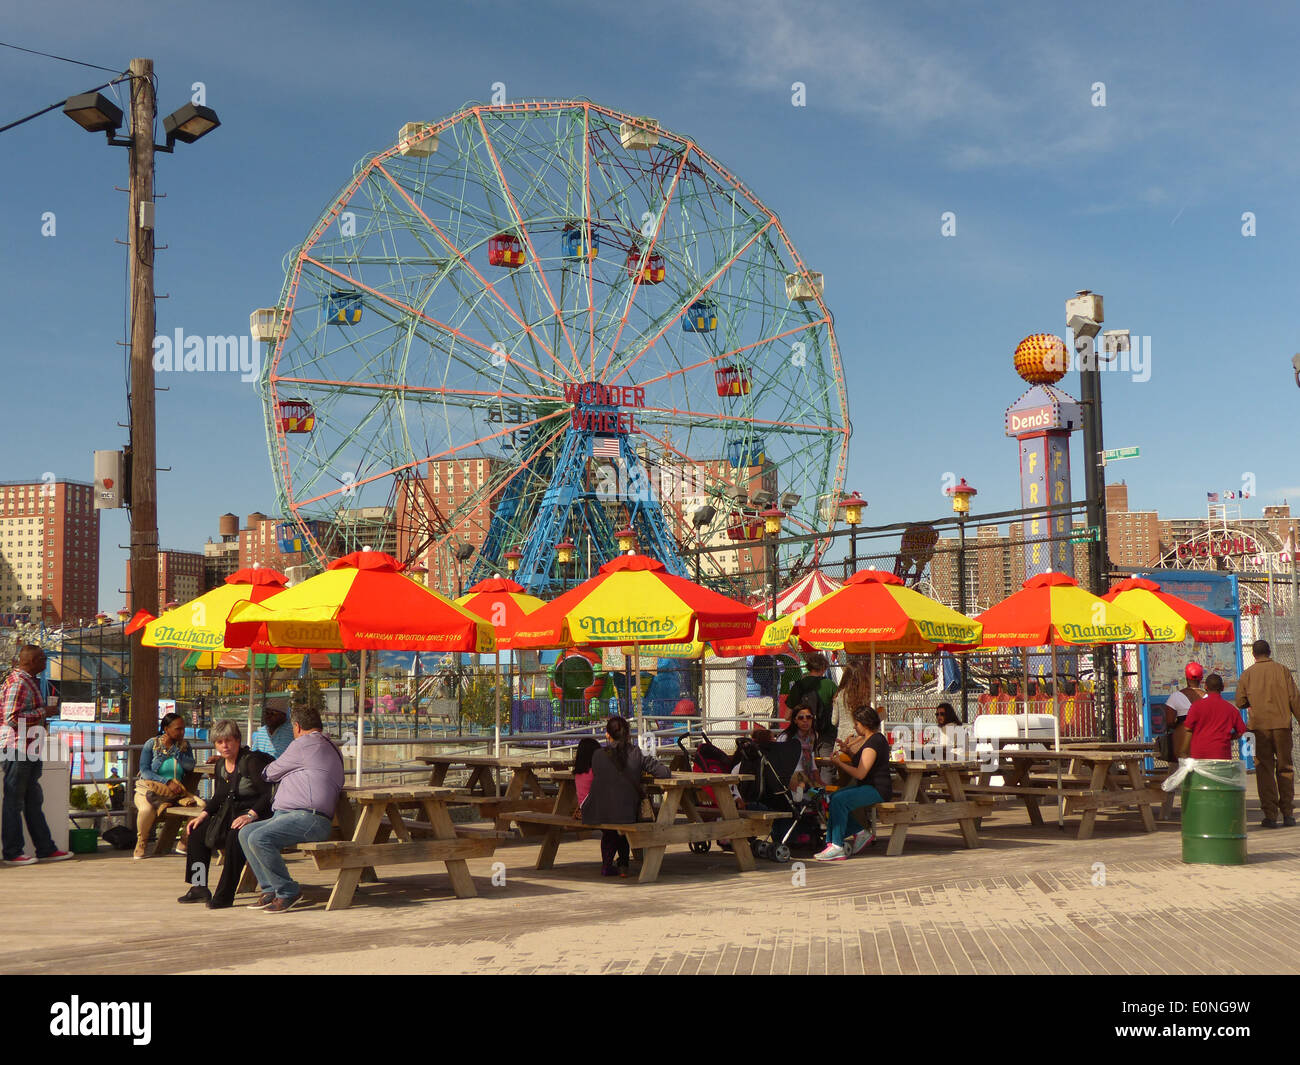 Coney Island, New York out of season - Stock Image